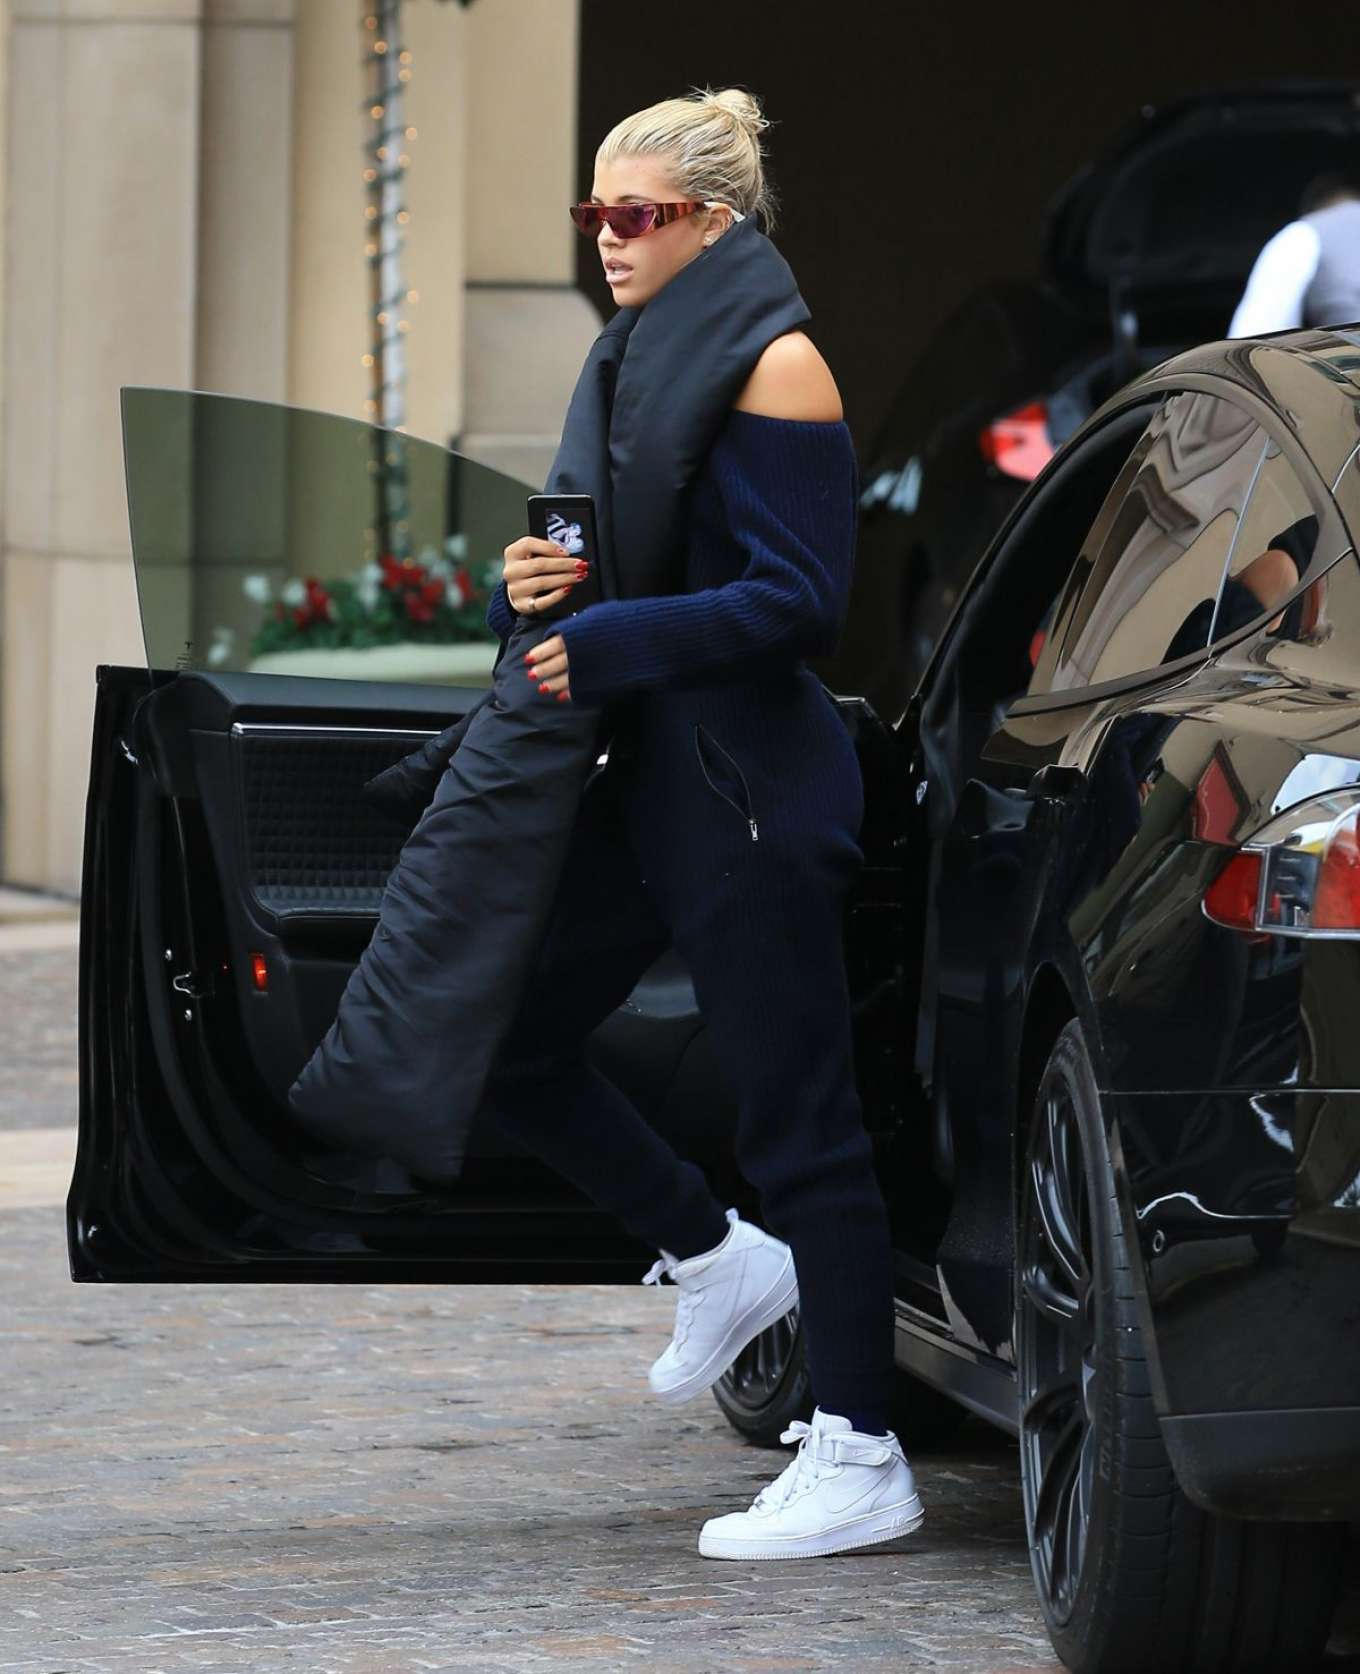 Sofia Richie 2015 : Sofia Richie Out in Beverly Hills -04